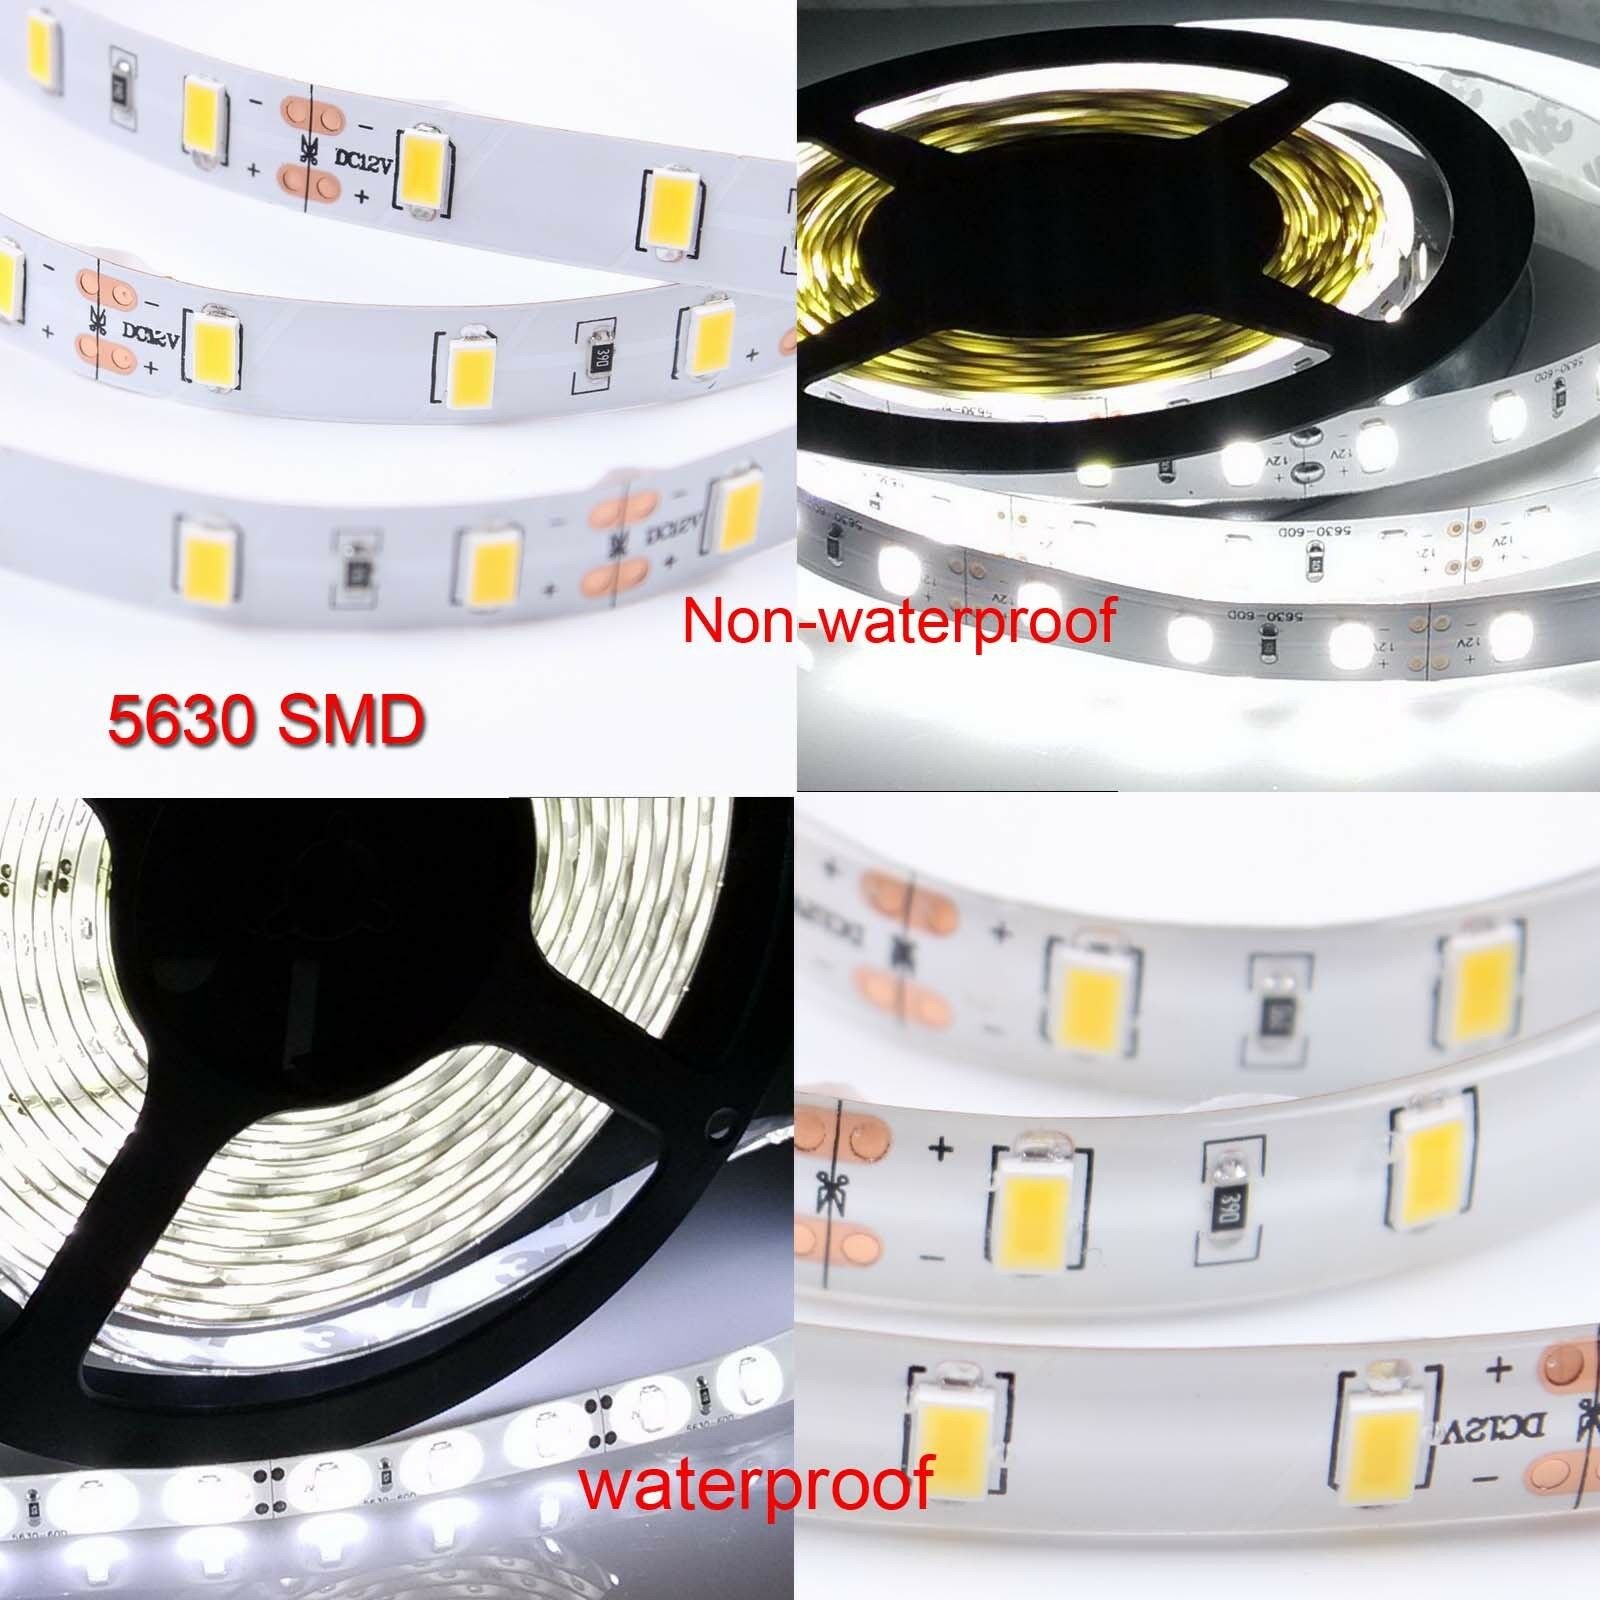 5m 10m 20m 5630 SMD LED Strip Lights Kit Waterproof Dimmable Adapter Controller 4